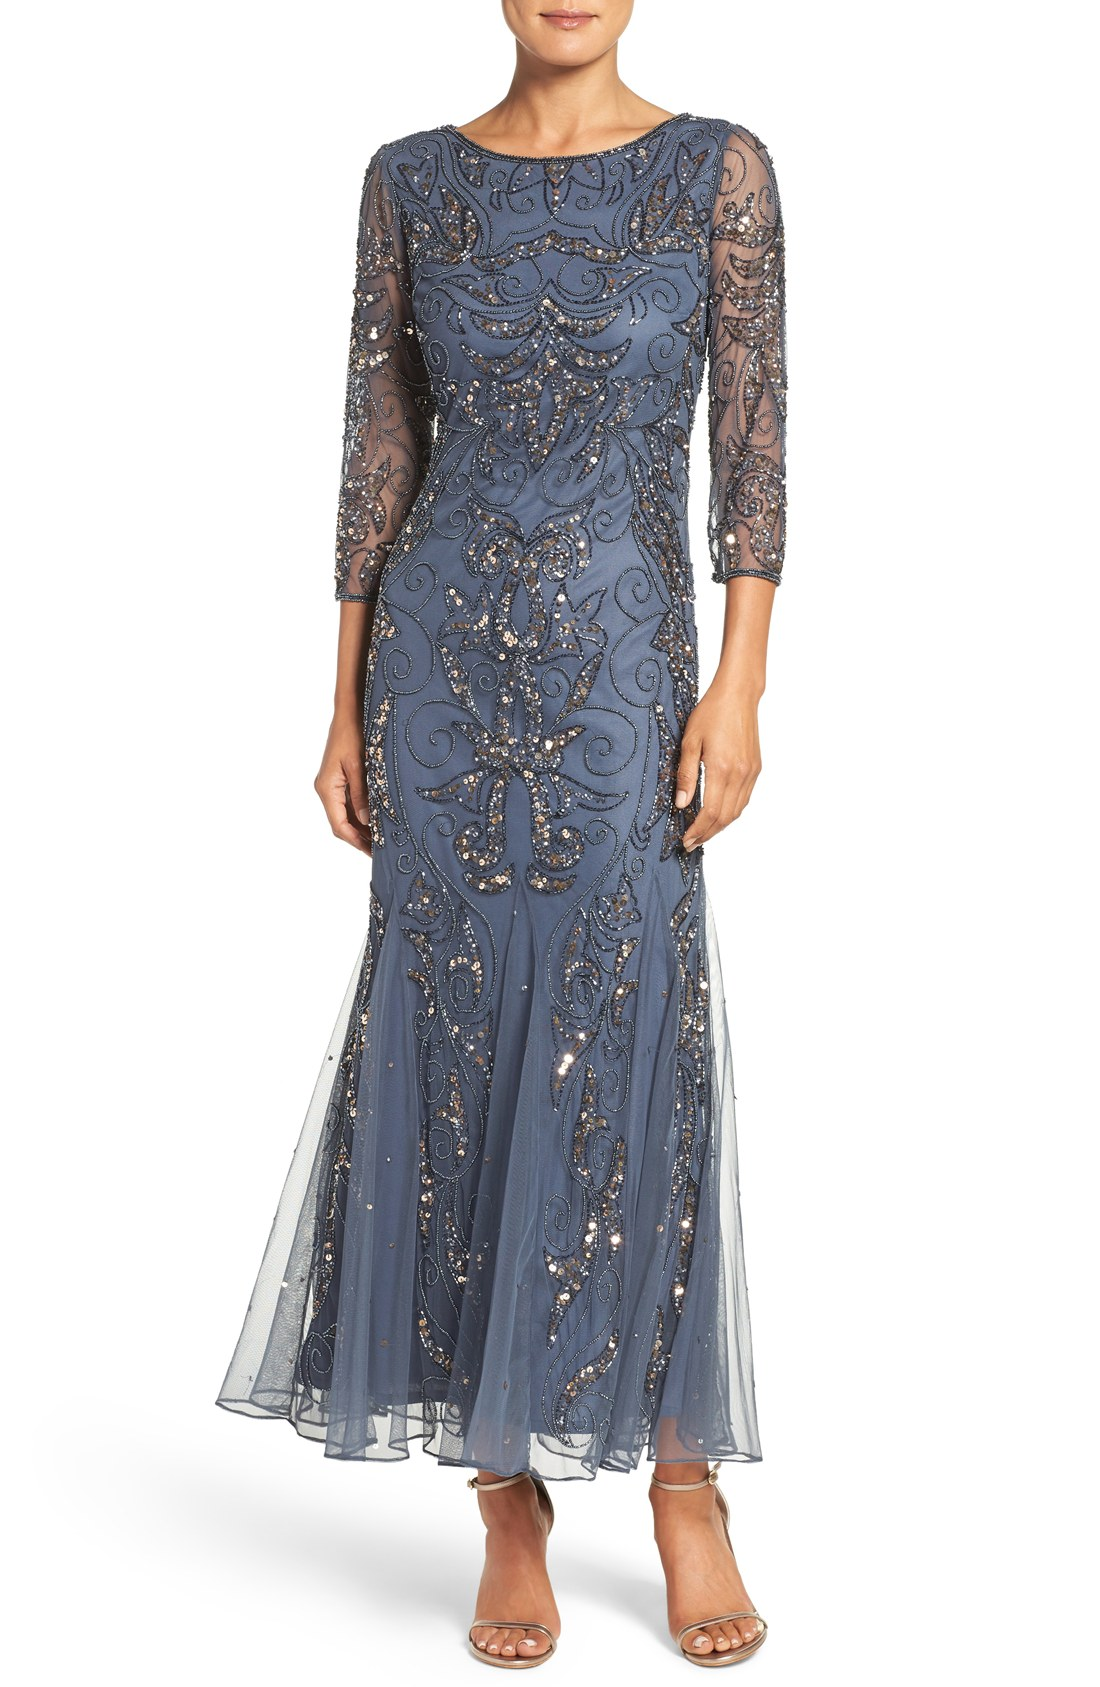 06fd74a7385 Thousands of glimmering beads and sequins sparkle around a mesh-veiled dress  designed with beautiful drape and flow accentuated by godets.